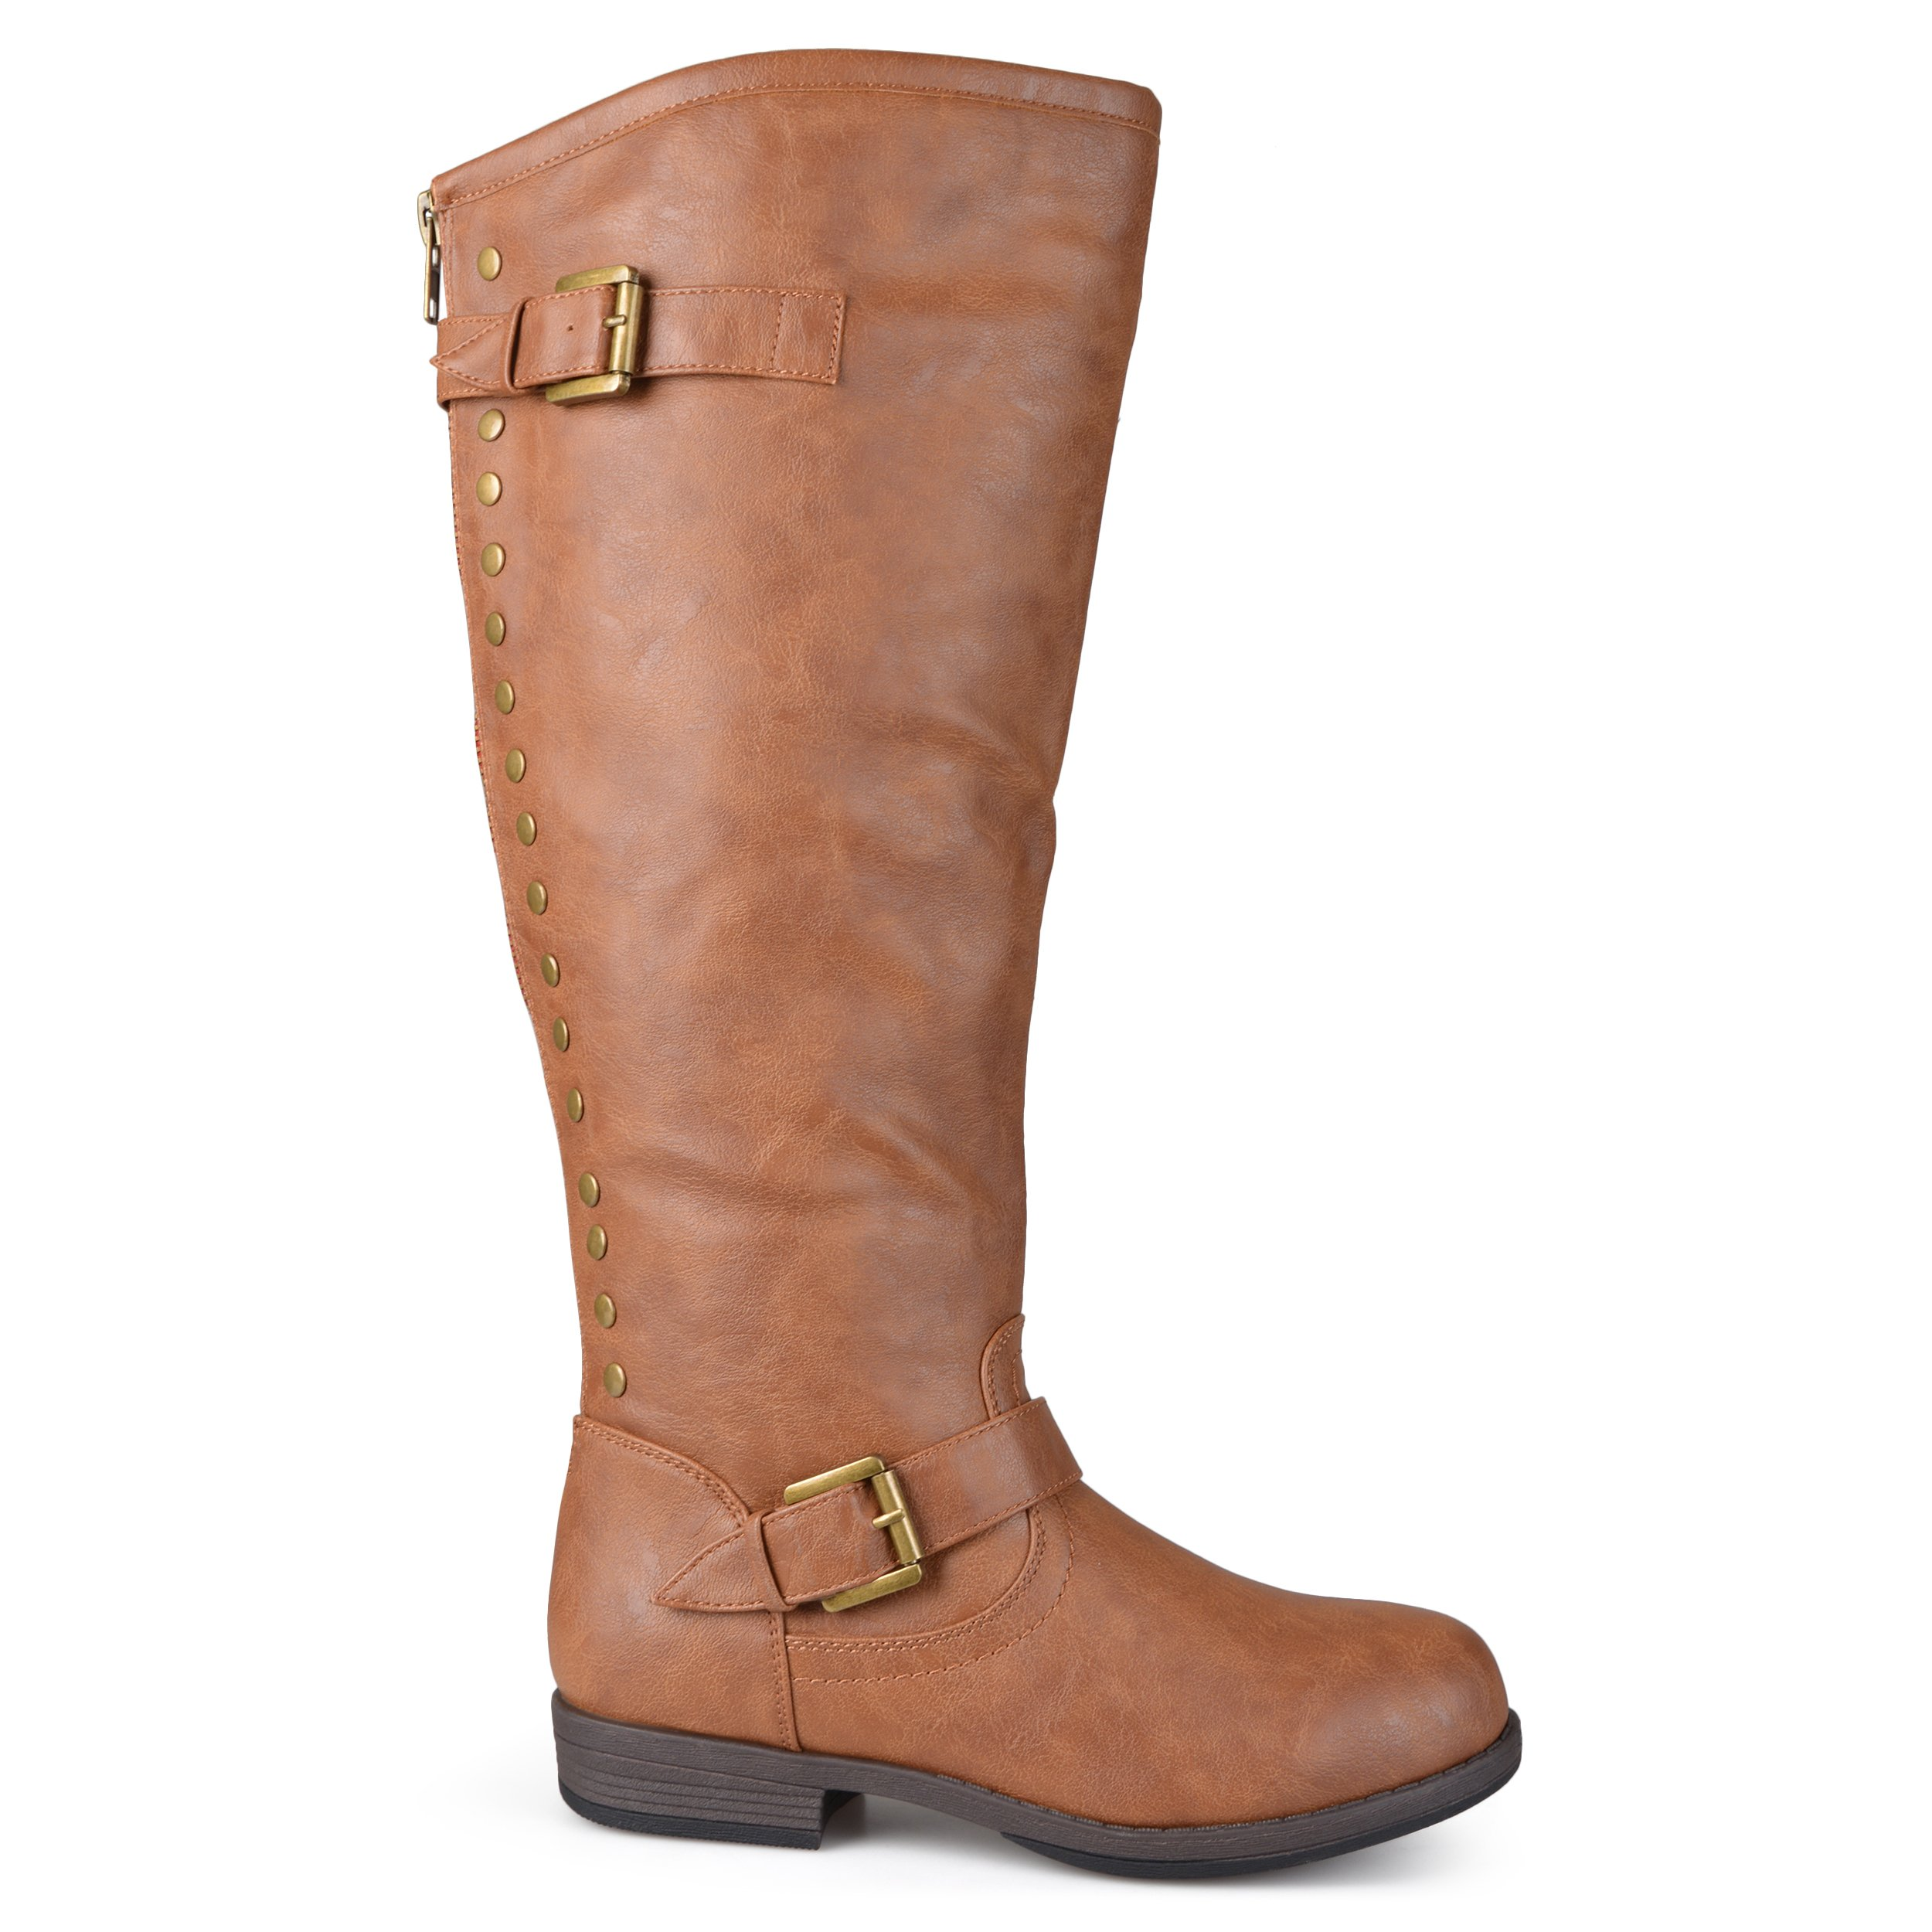 Brinley Co Womens Extra Wide Calf Knee-high Studded Riding Boots Chestnut, 7.5 Extra Wide Calf US